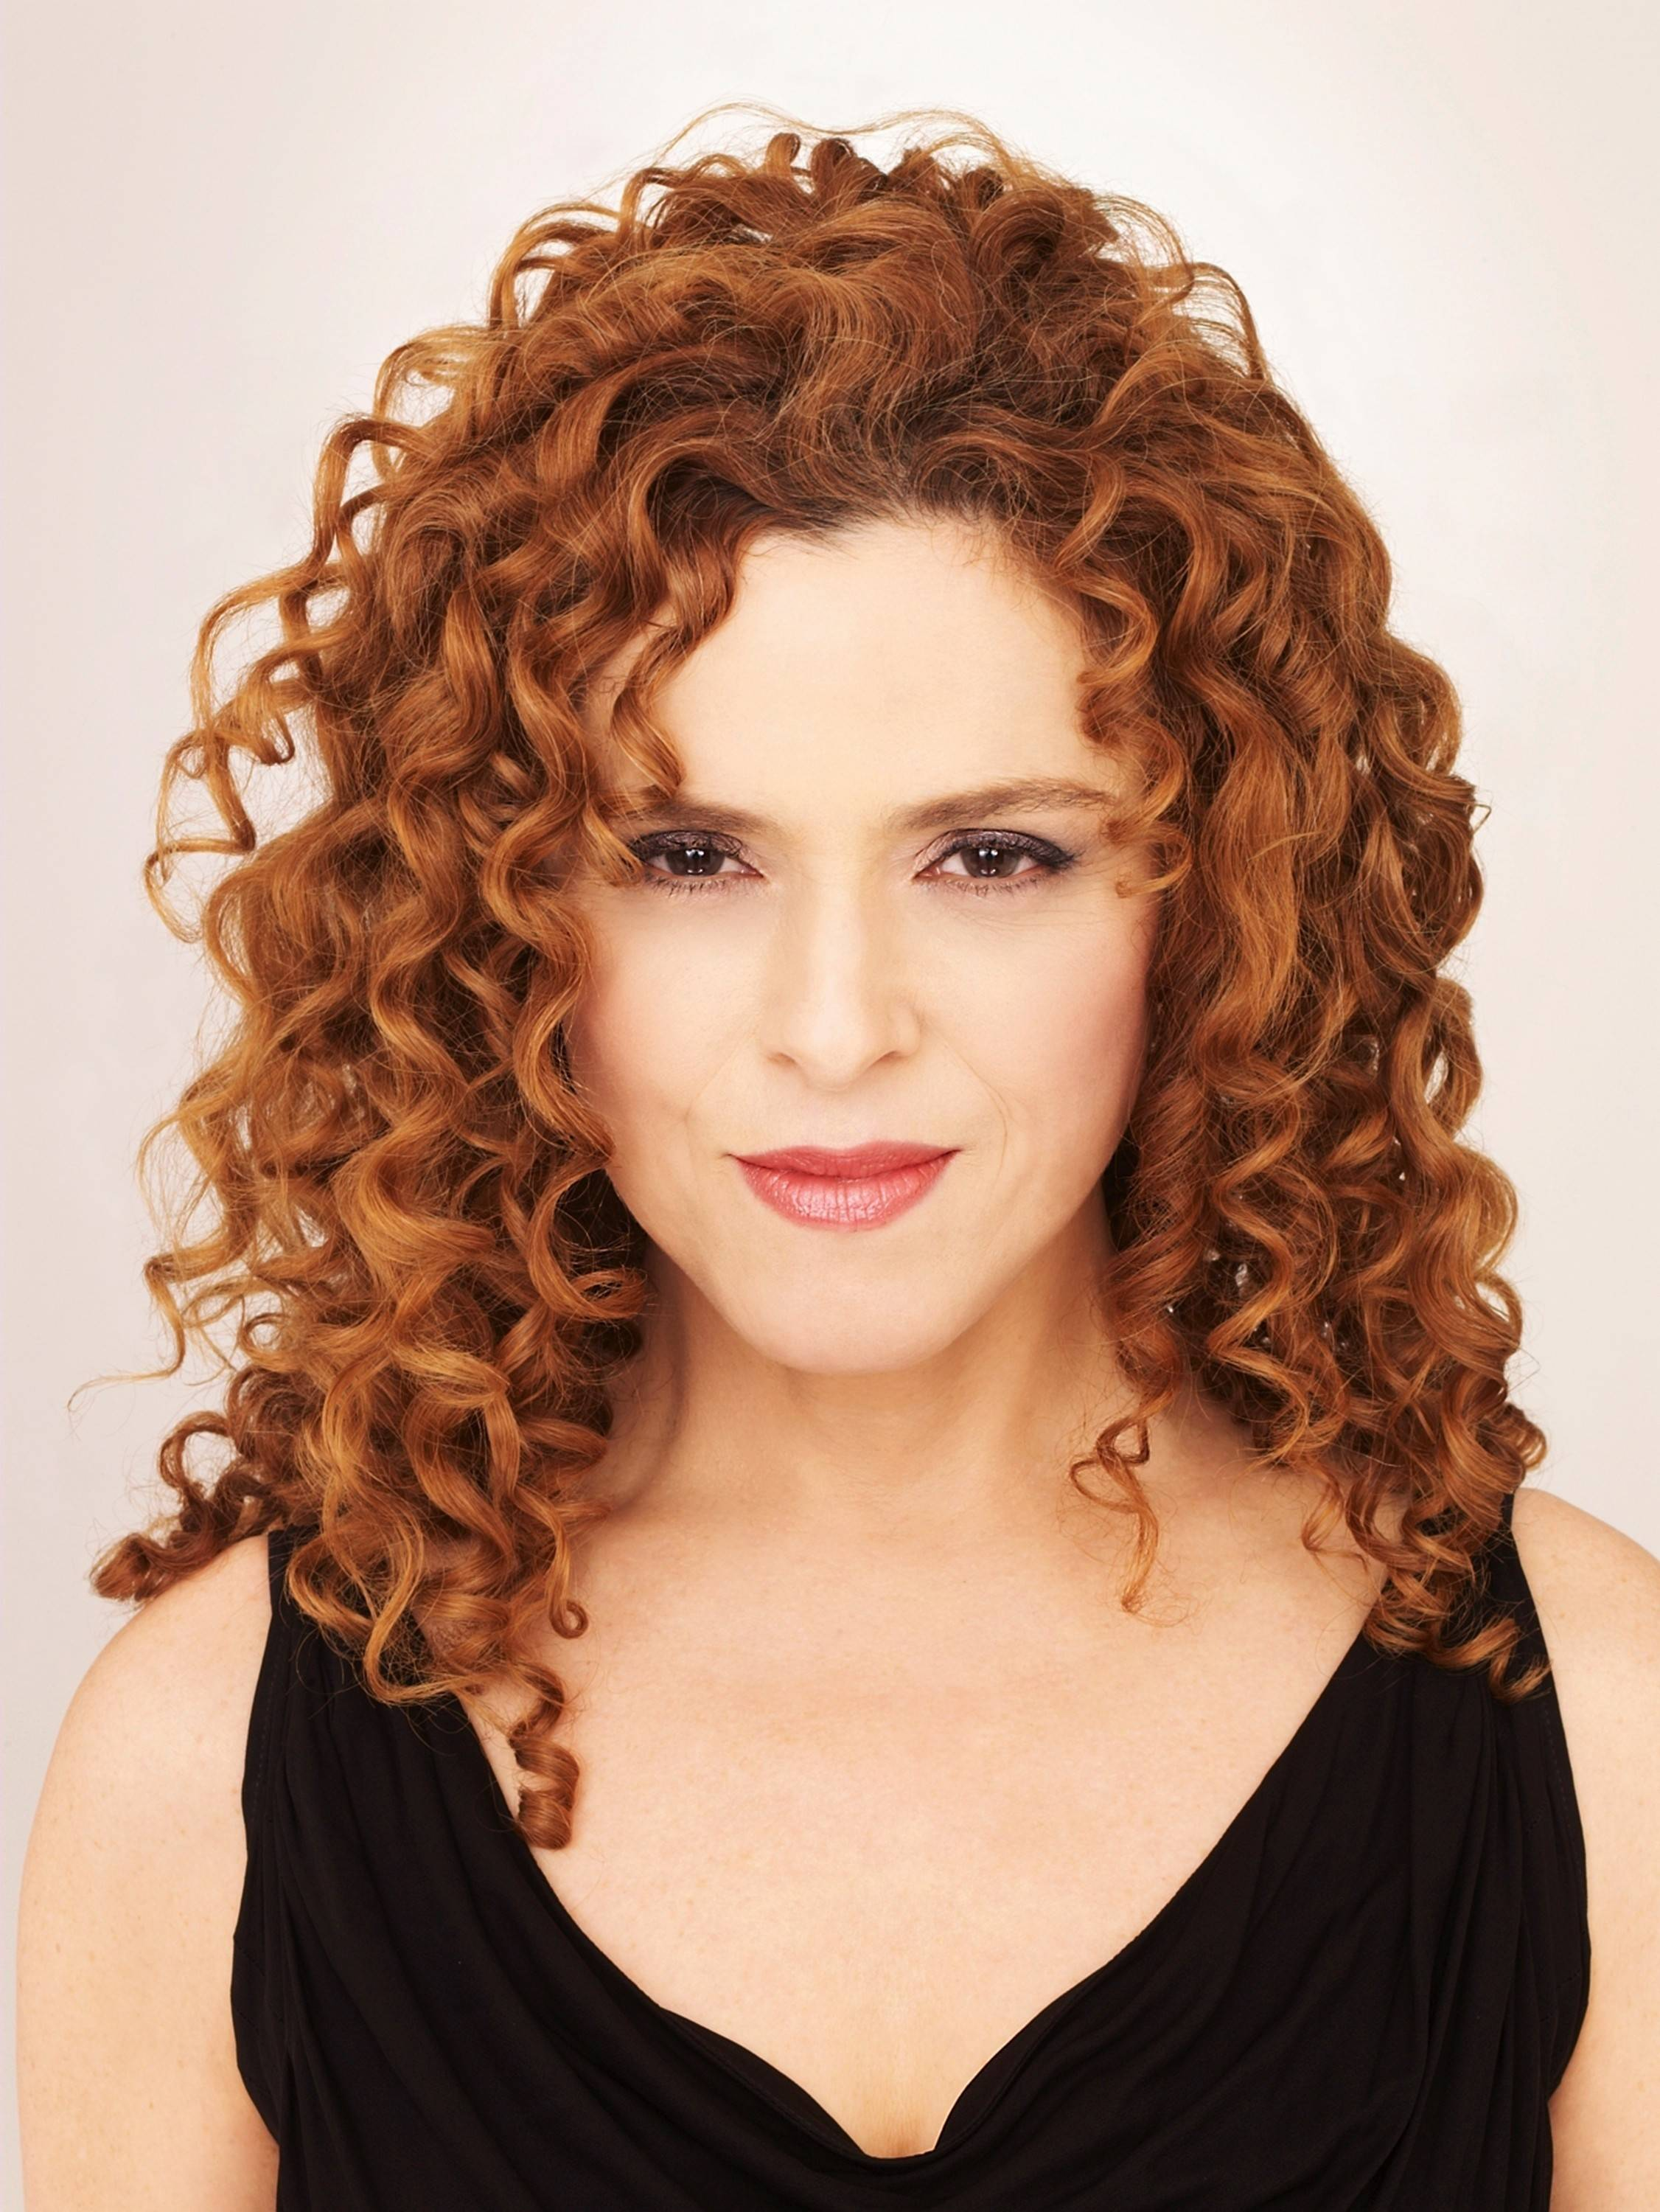 Tony Award-winning Broadway star Bernadette Peters appears in concert at the Genesee Theatre in Waukegan on Friday, Feb. 14.